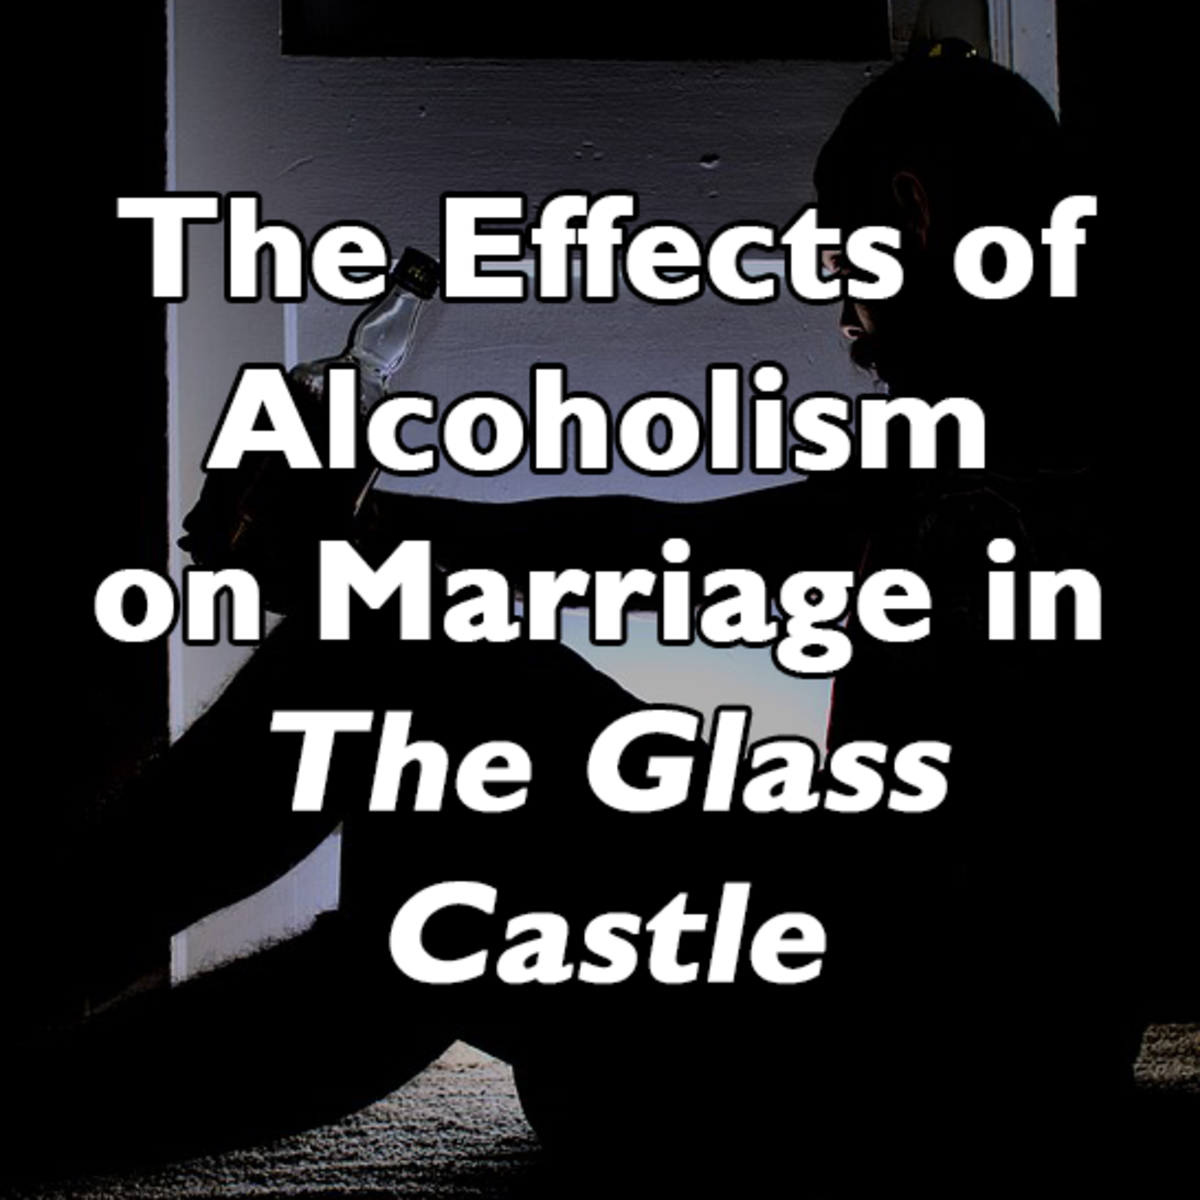 The Effects of Alcoholism on Marriage in The Glass Castle by Jeanette Walls